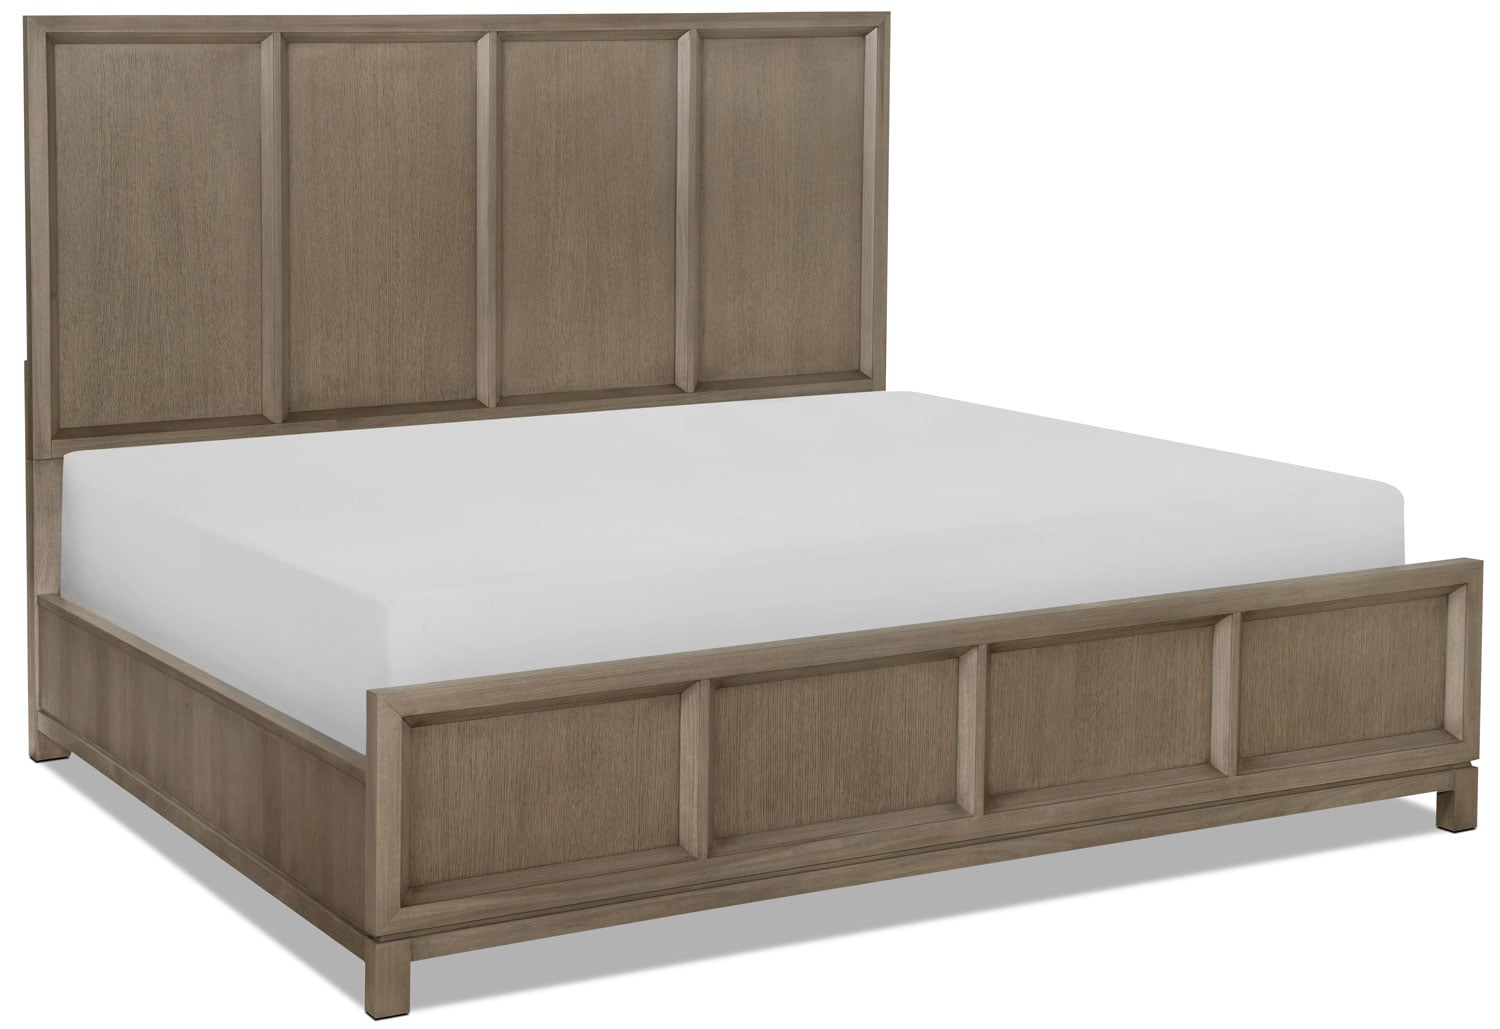 Rachael Ray Highline Queen Panel Bed - Greige